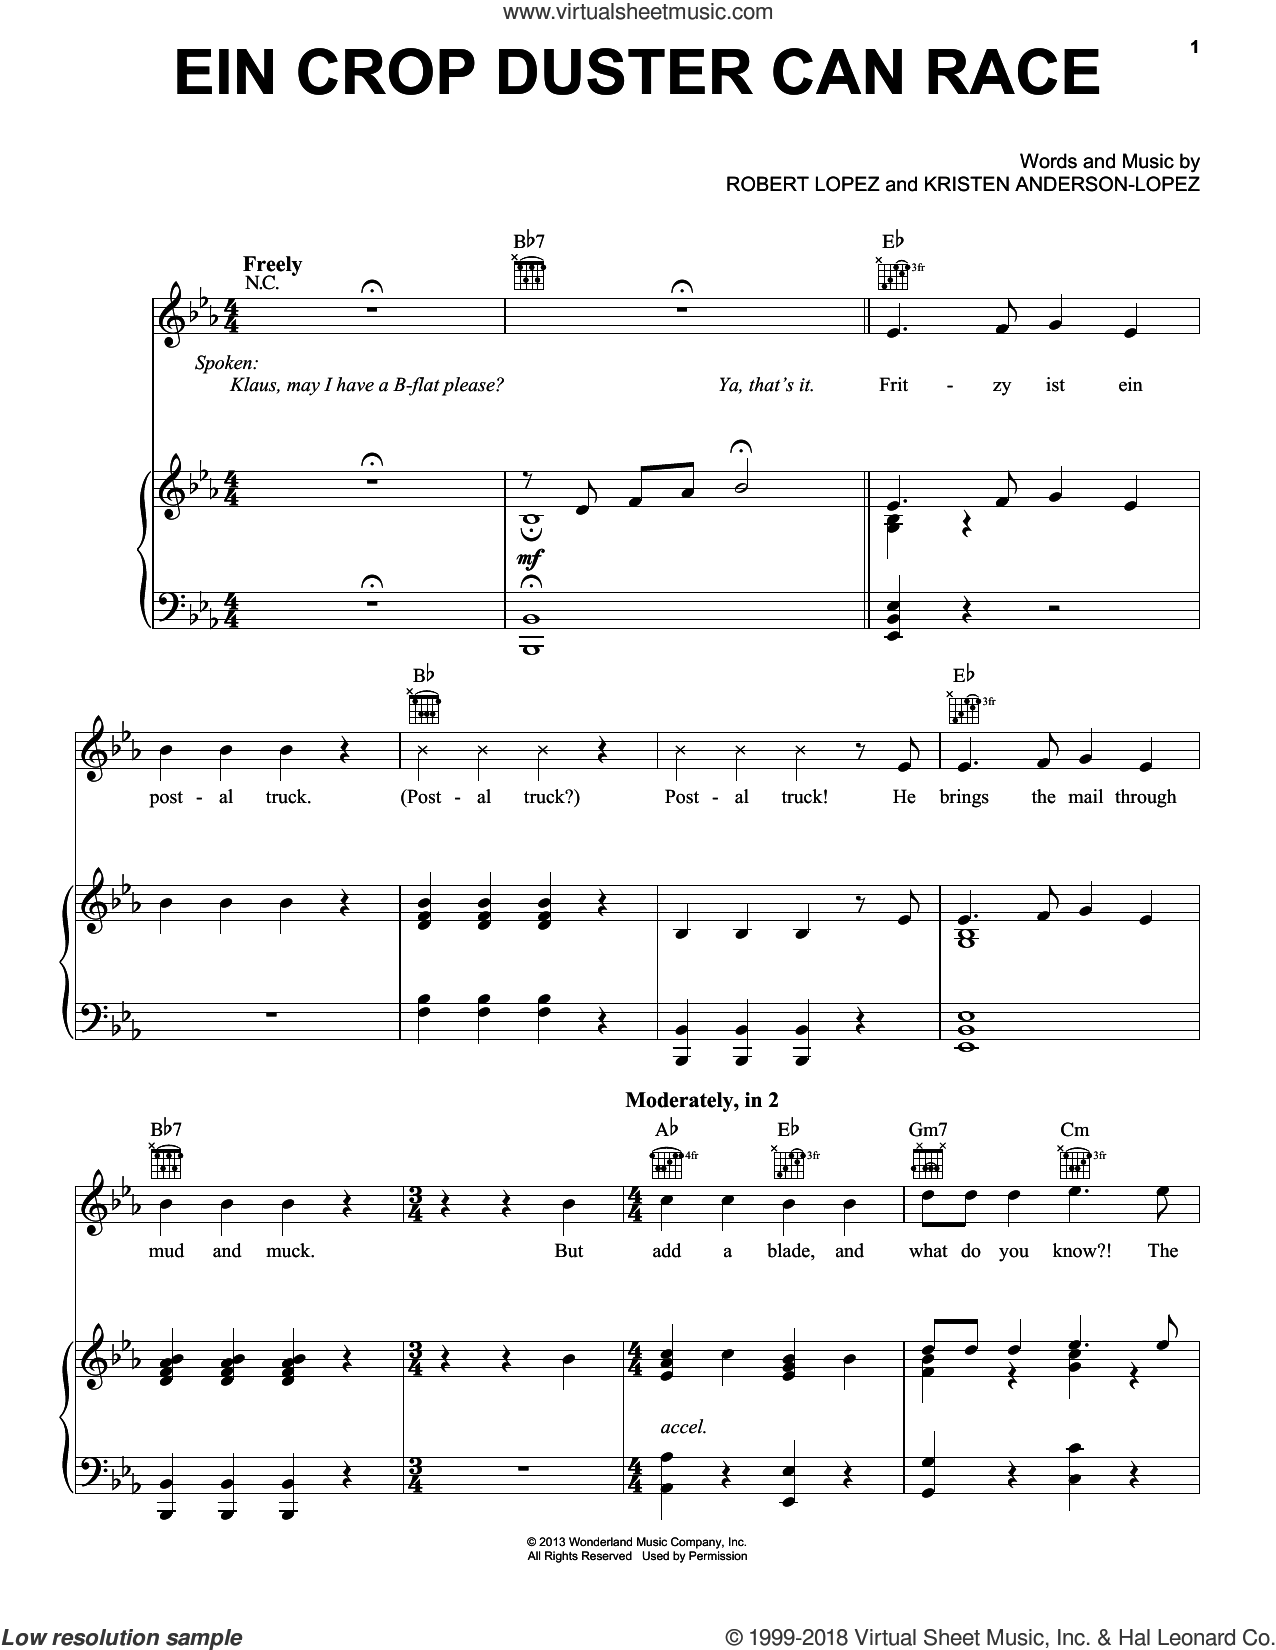 Ein Crop Duster Can Race sheet music for voice, piano or guitar by Robert Lopez, Kristen Anderson-Lopez and Mark Mancina. Score Image Preview.